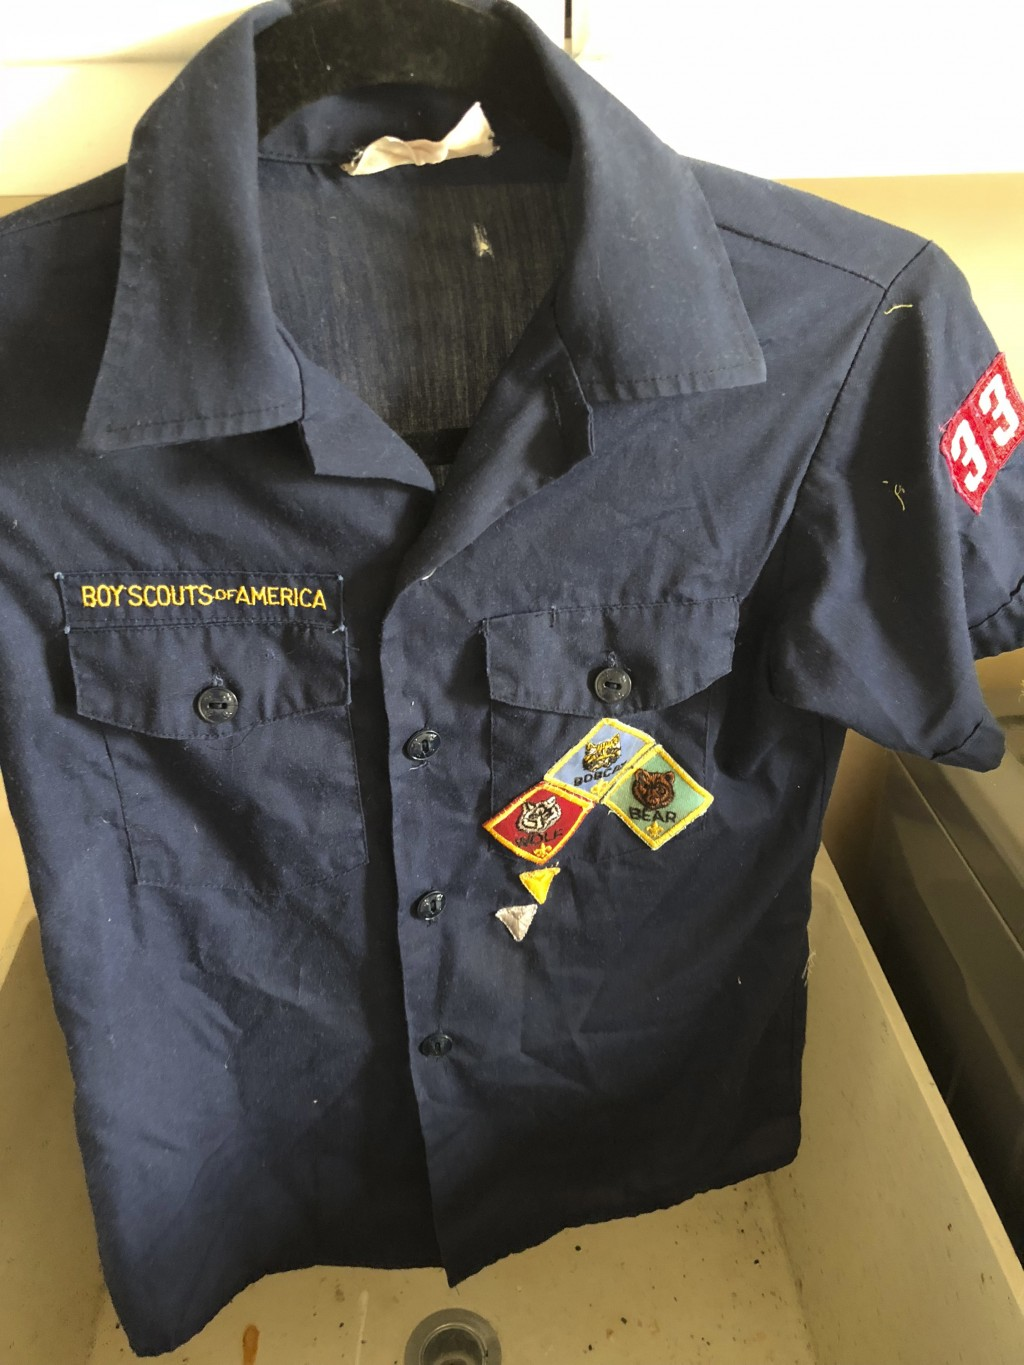 This Feb. 13, 2018, photo provided by Erin Doherty shows the Boy Scout uniform of a Montecito, Calif., mudslide victim, believed to be dead, after Doh